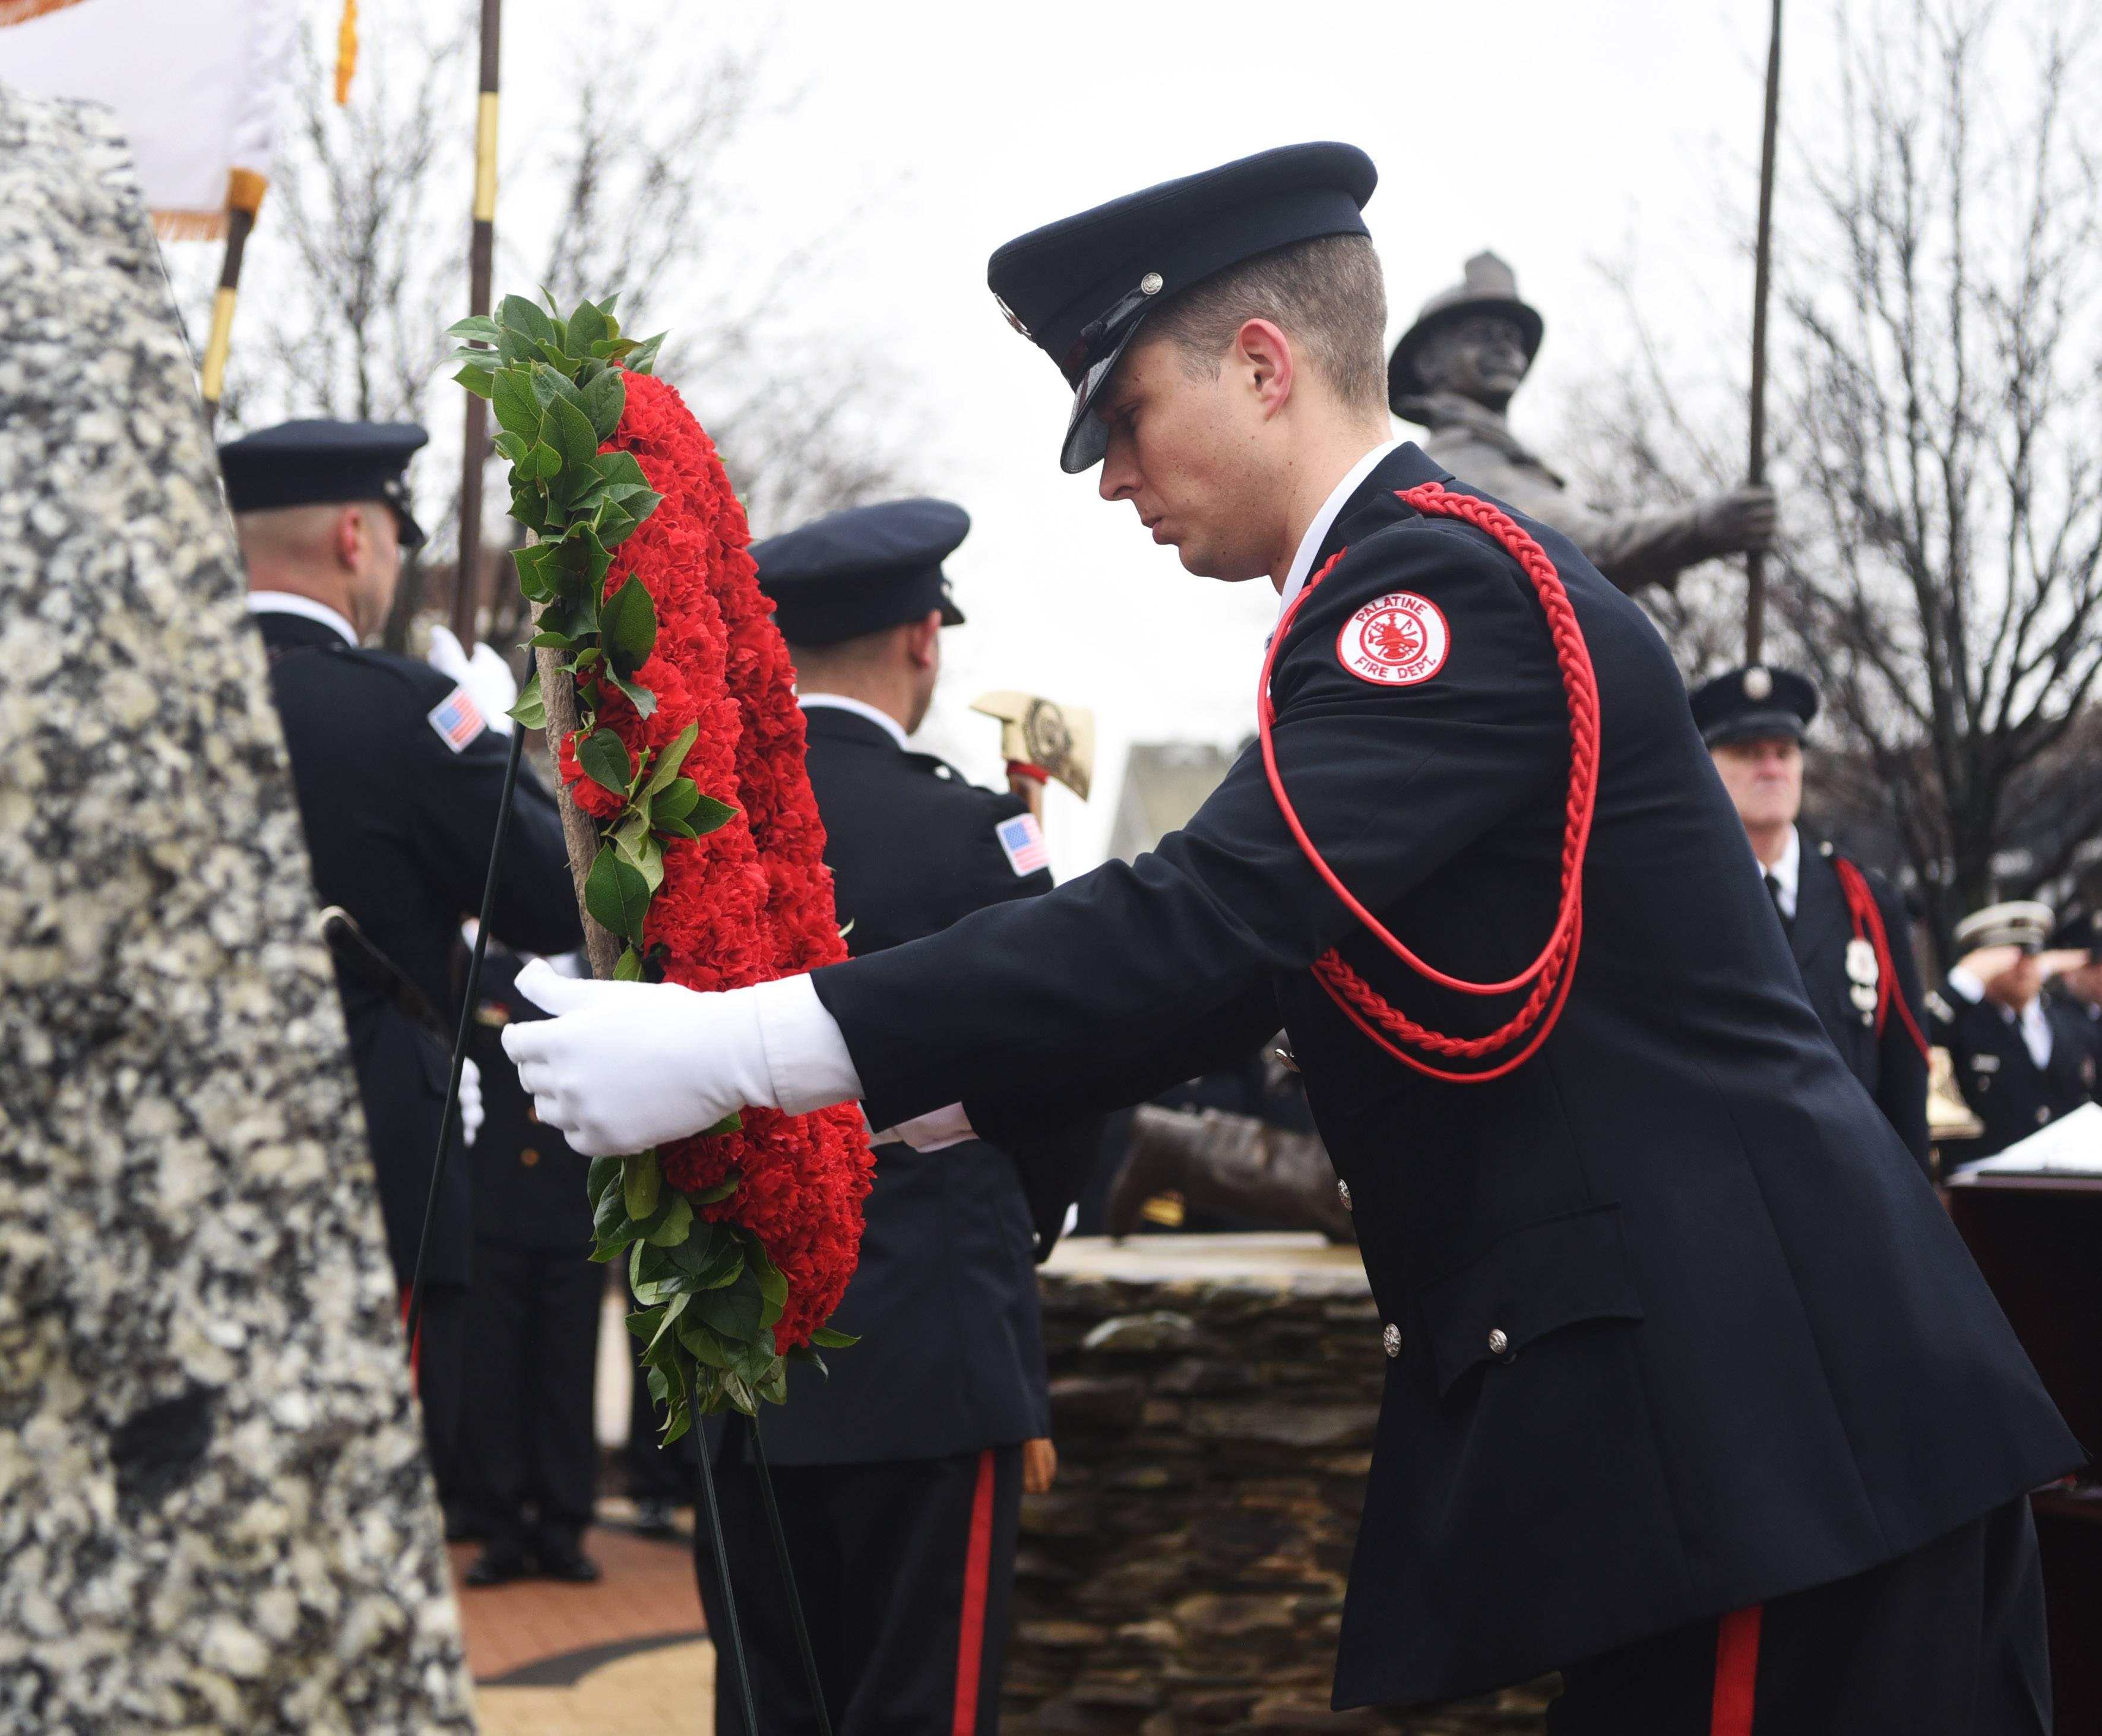 Firefighter/paramedic Brandon Lefebvre places a wreath during a ceremony to recognize the service and sacrifice of three Palatine volunteer firefighters who were killed in the line of duty while battling a Ben Franklin store fire on Feb. 23, 1973.